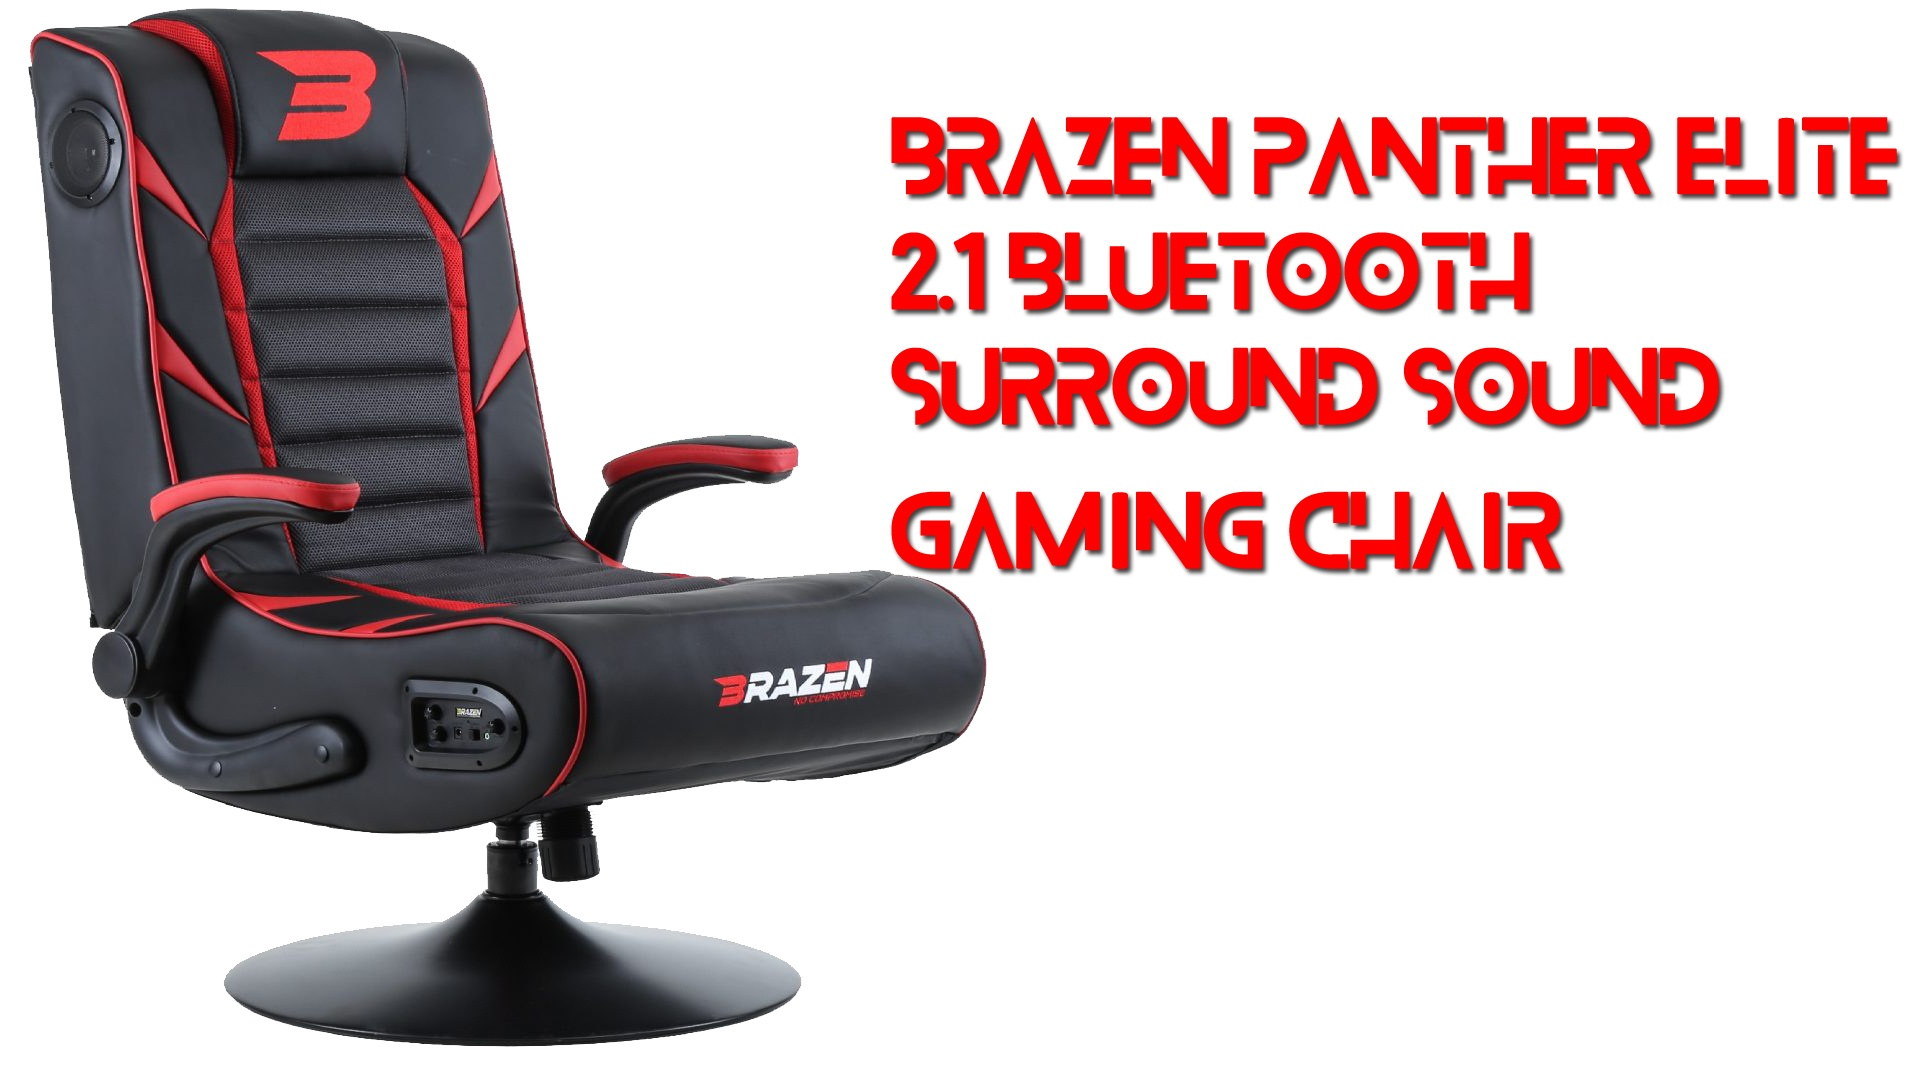 Enjoyable Brazen Panther Elite Review Bluetooth Surround Sound Bralicious Painted Fabric Chair Ideas Braliciousco